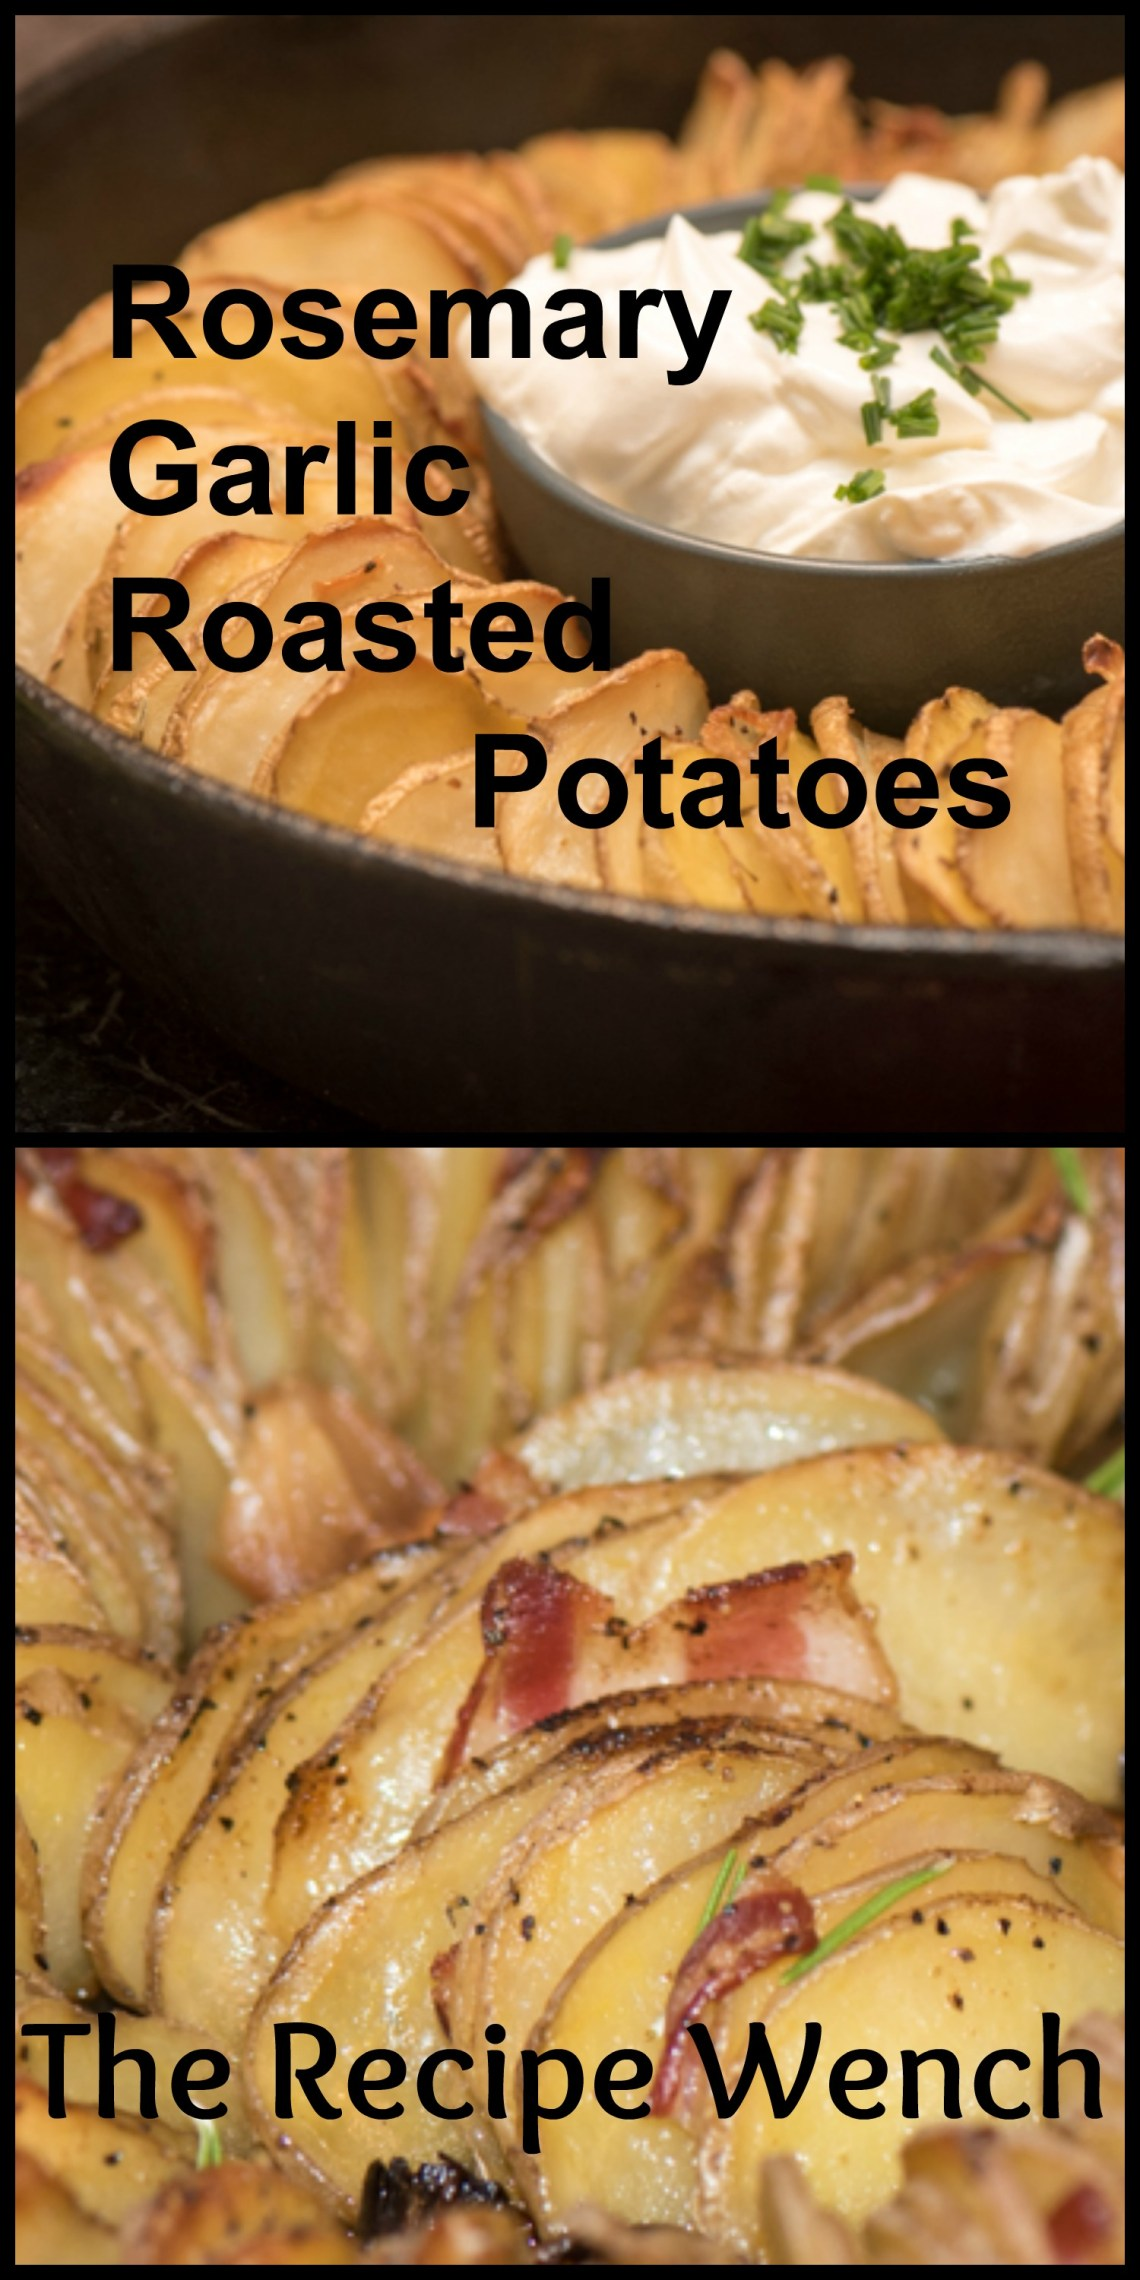 Rosemary garlic roasted potatoes - super tasty and simple. Thinly slice potatoes and layer in ovenproof dish for a pretty presentation. Top with sour cream   The Recipe Wench